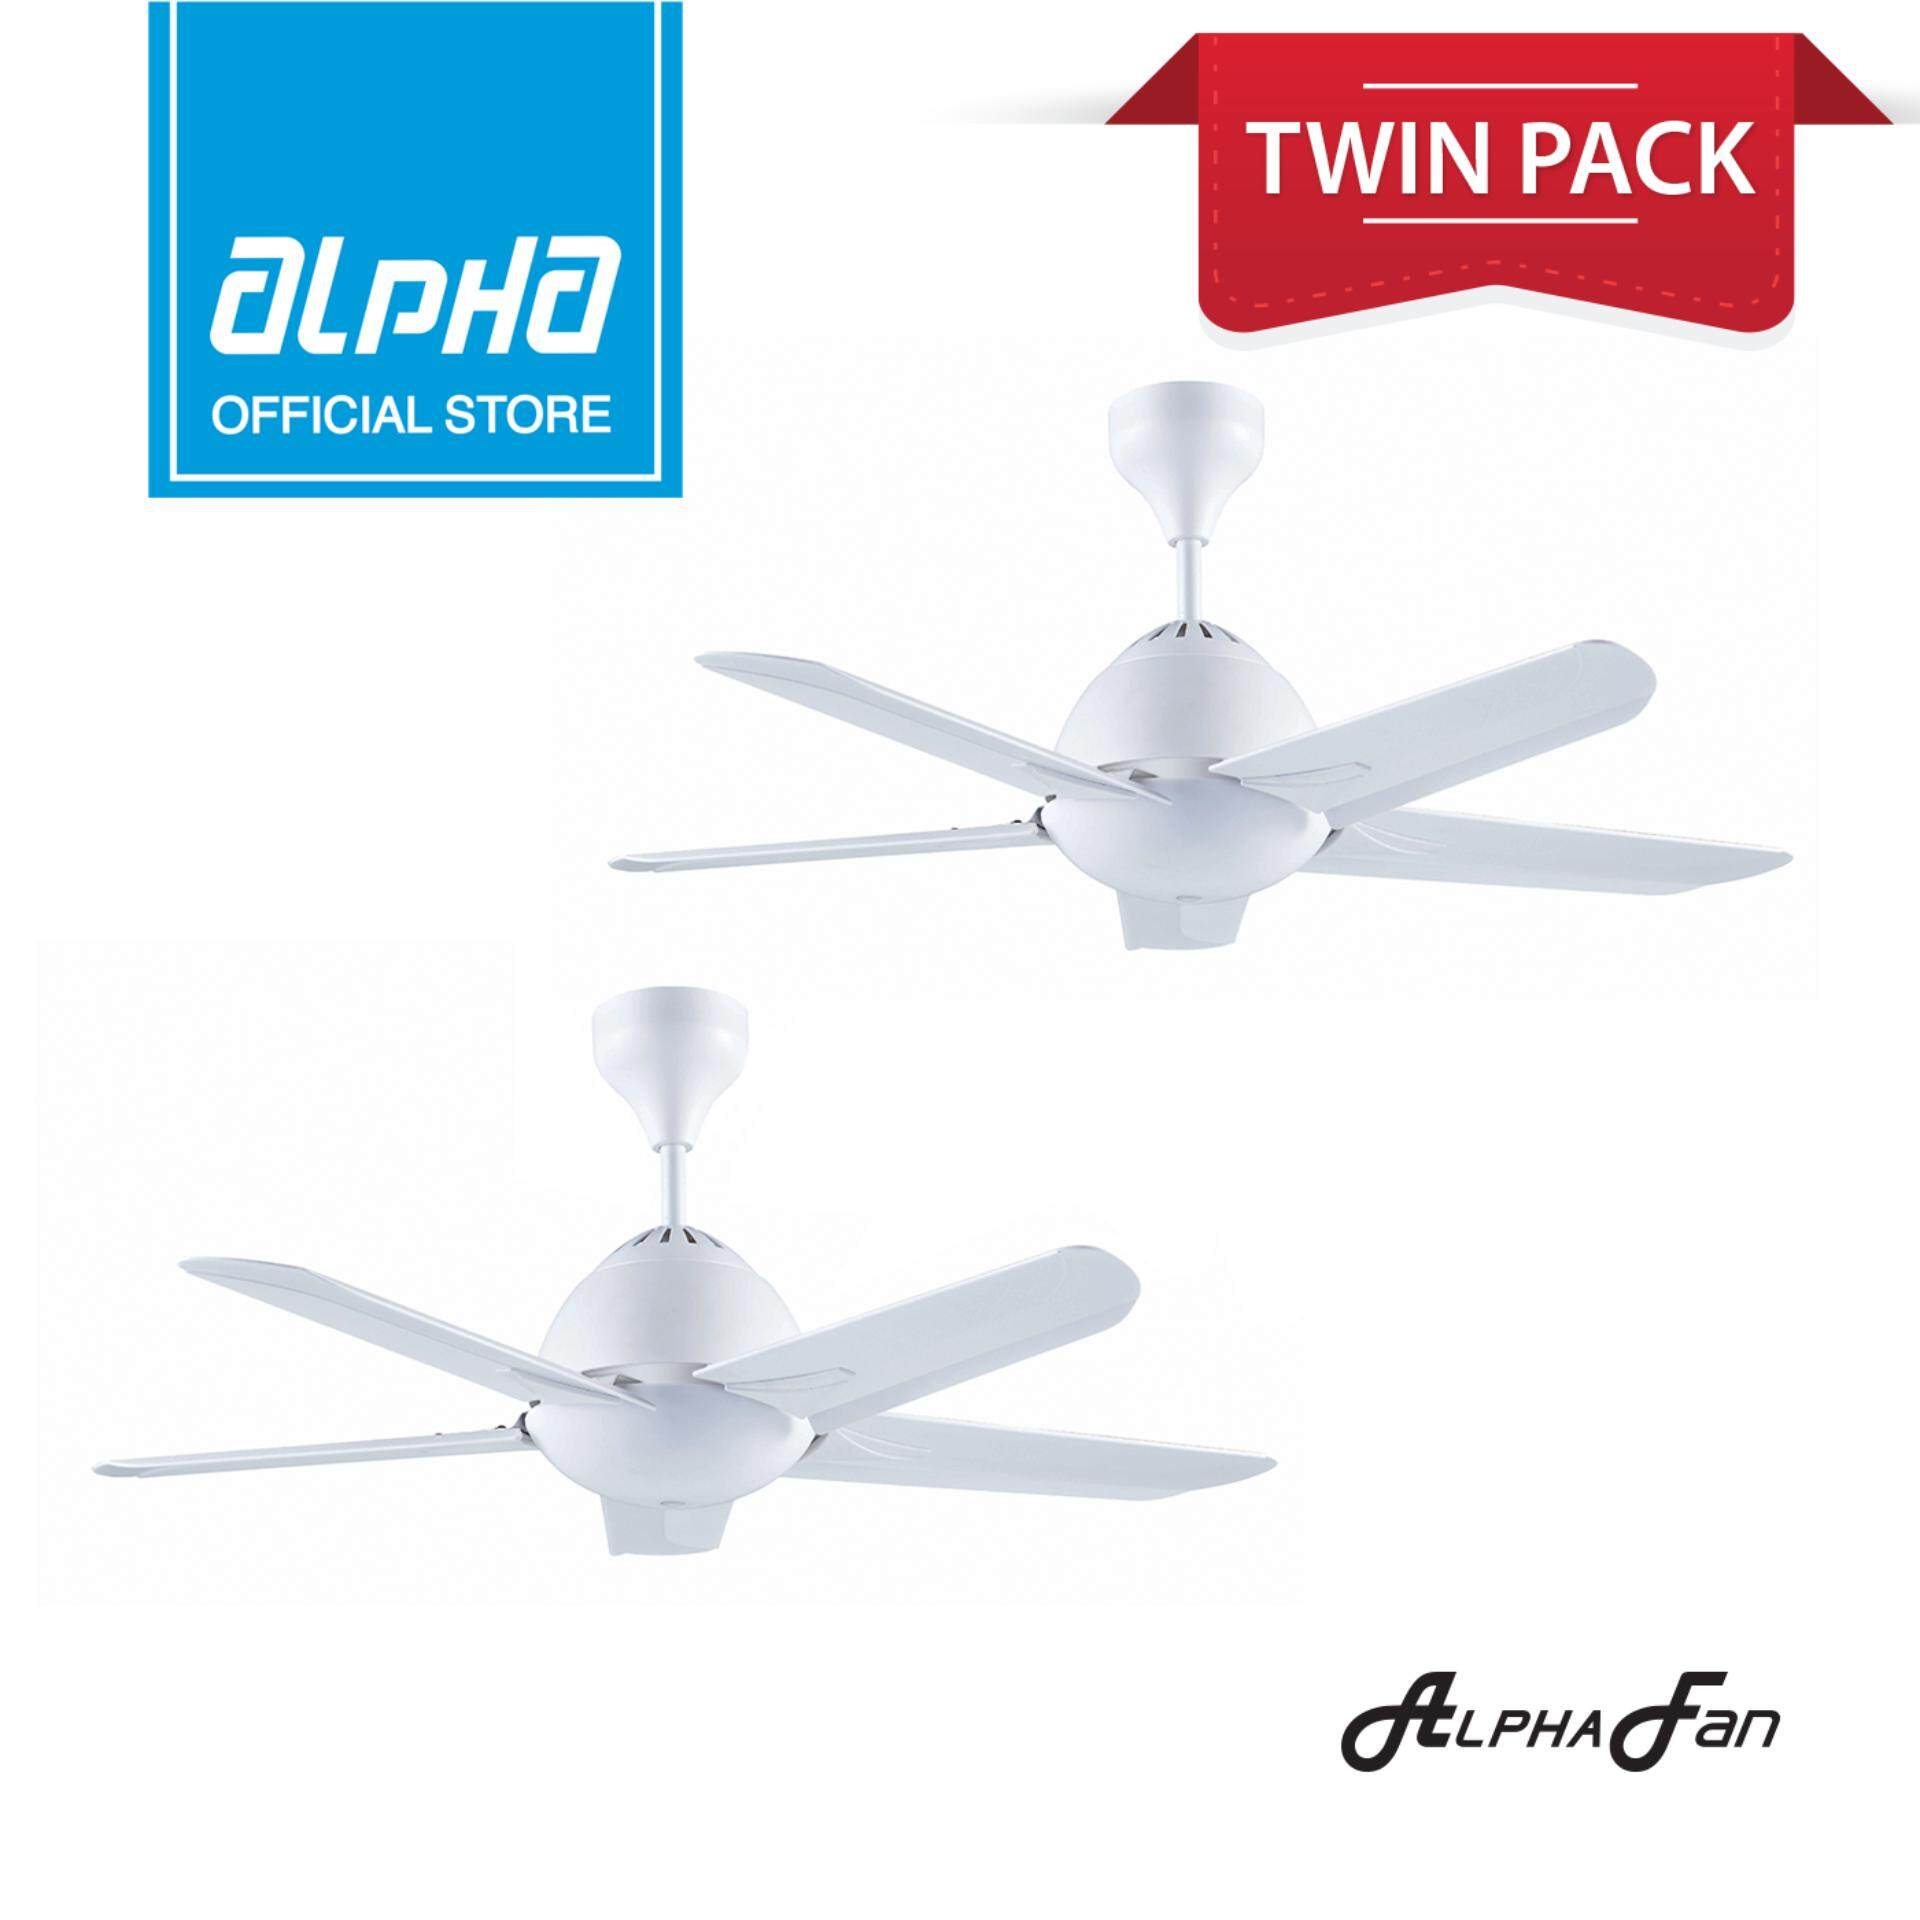 Twin Pack Alpha Af20 5b 42 Ceiling Fan With 5 Blades Sd Remote White Malaysia